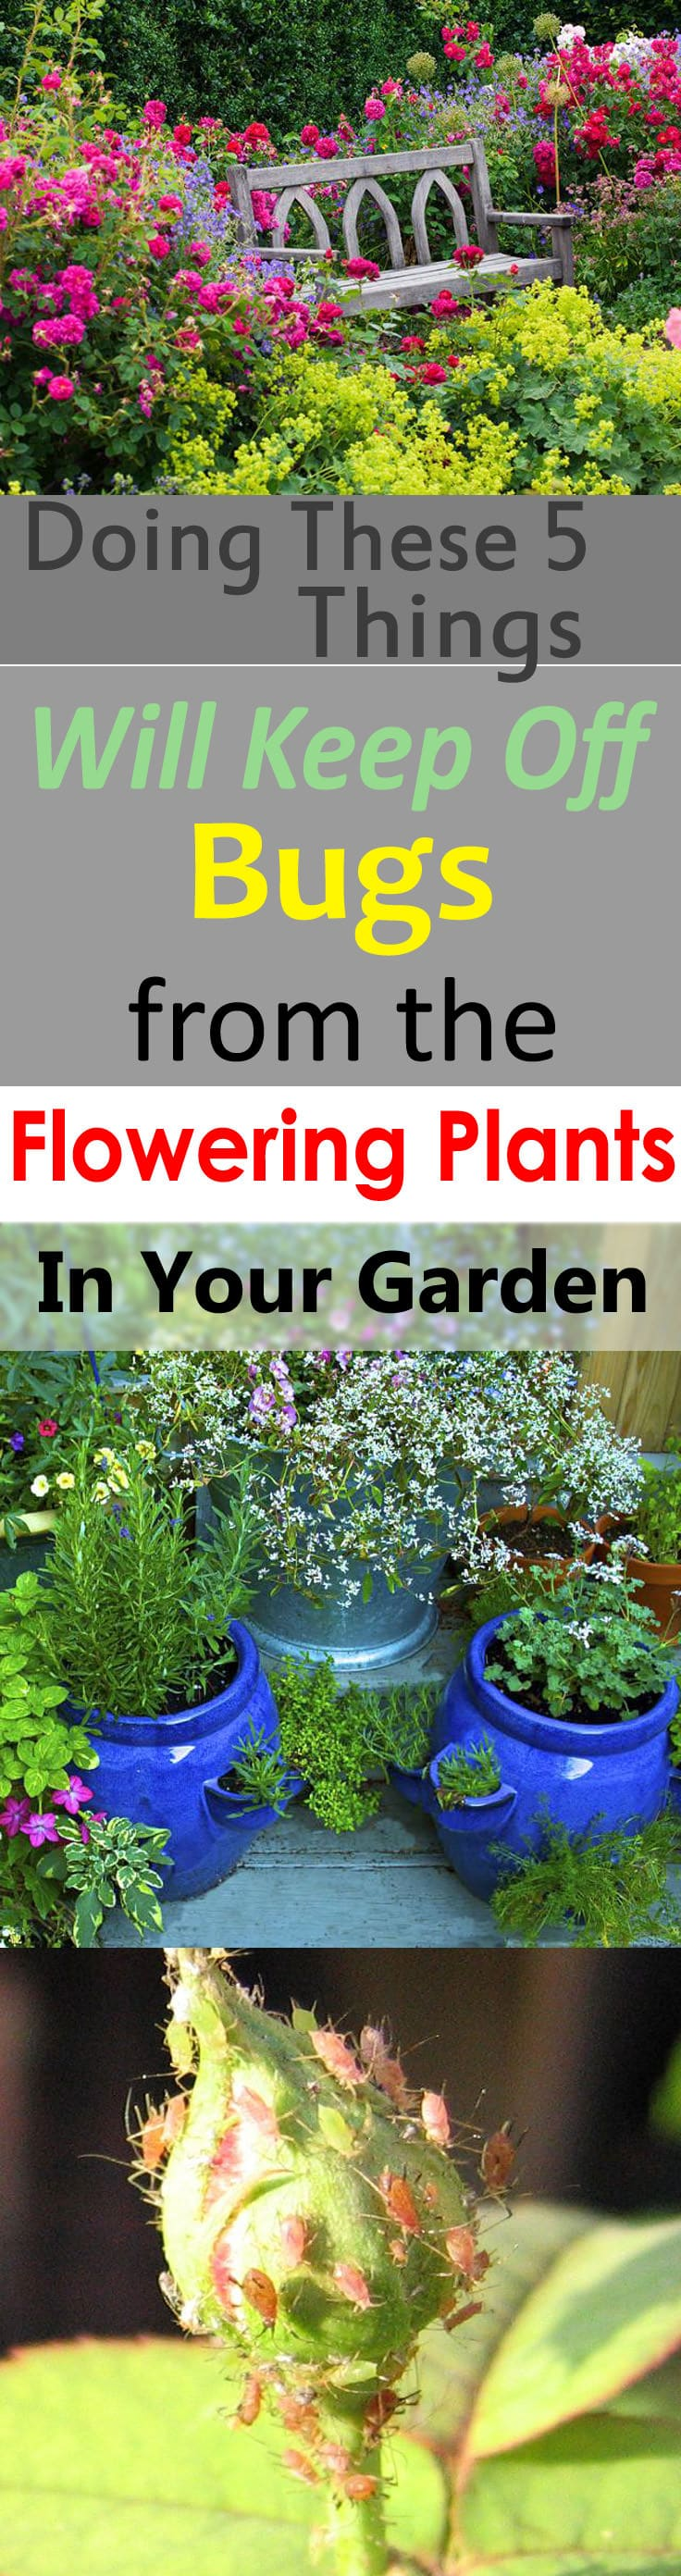 Are those pesky garden pests damaging your flowering plants? Read on! Doing these 5 things will surely keep off bugs from the flowering plants in your garden.